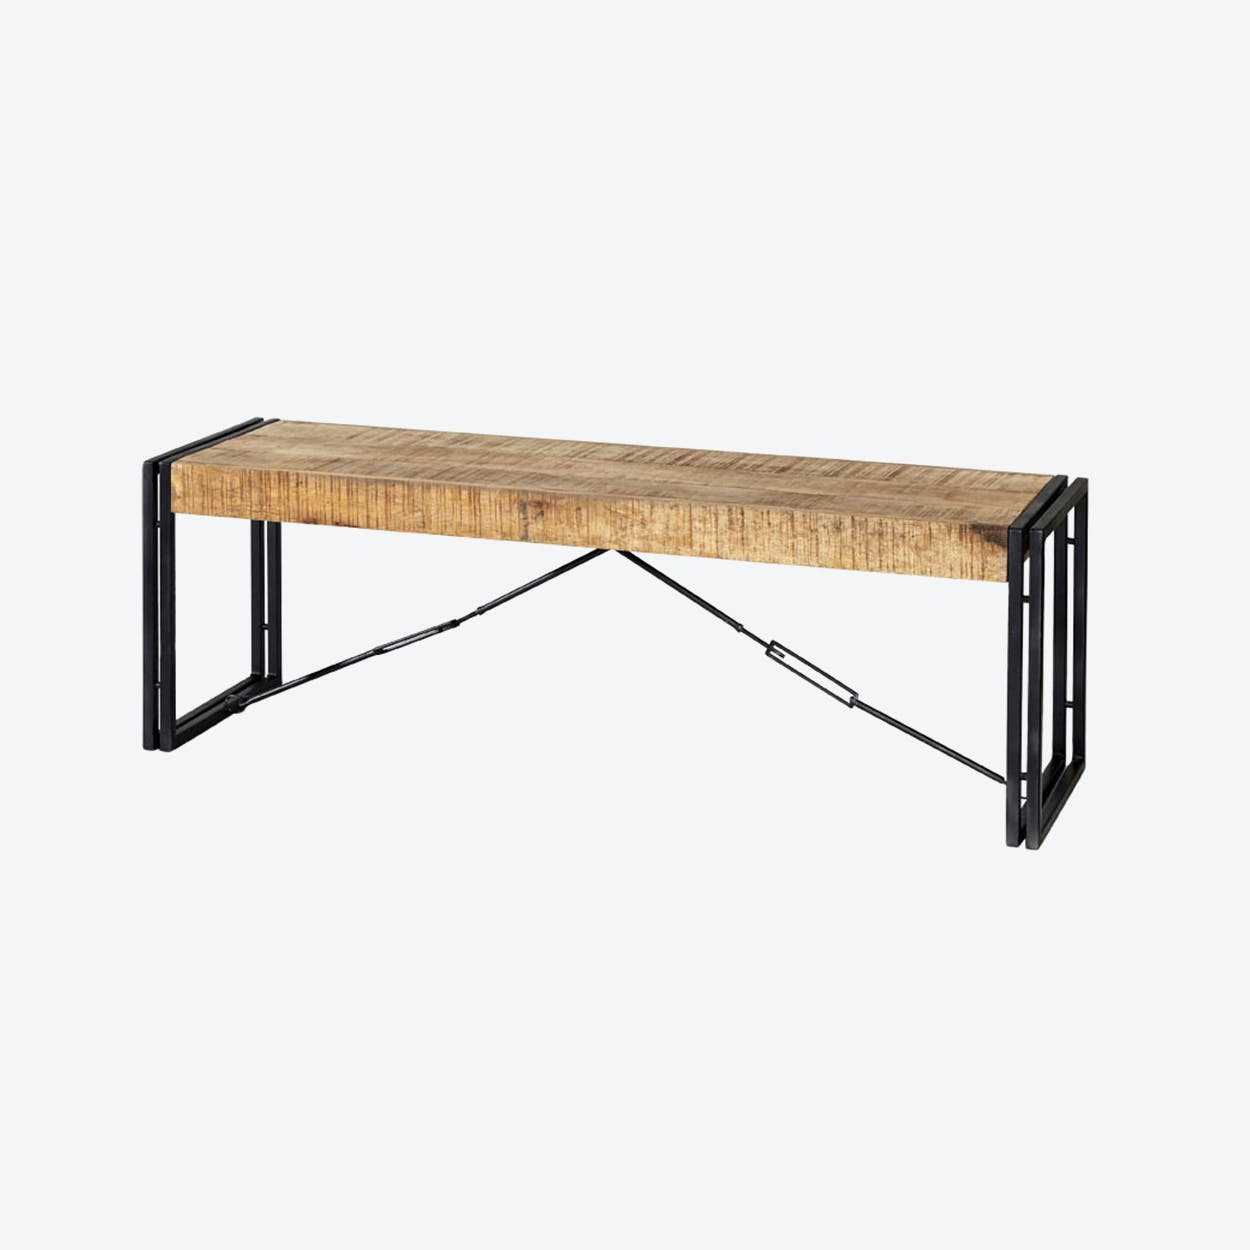 Mango Wood Metal & Wood Bench